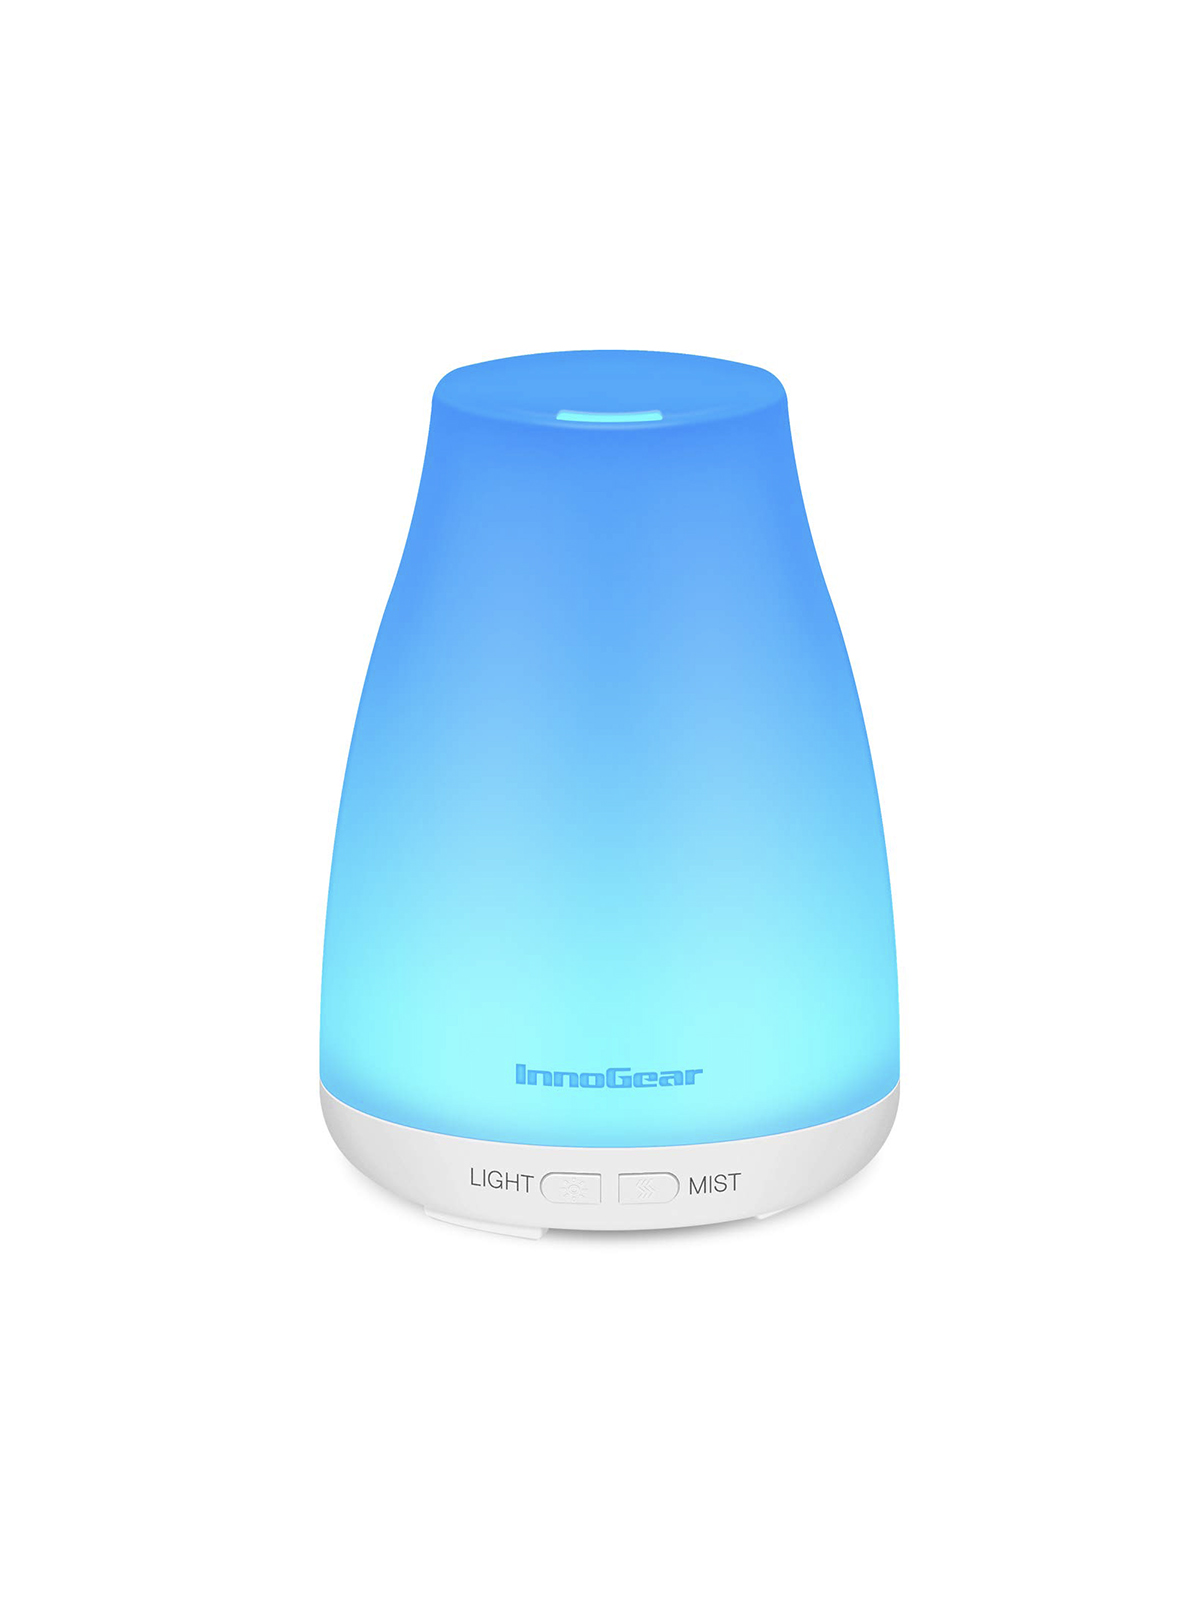 Cool Gadgets on Amazon, aromatherapy essential oil diffuser